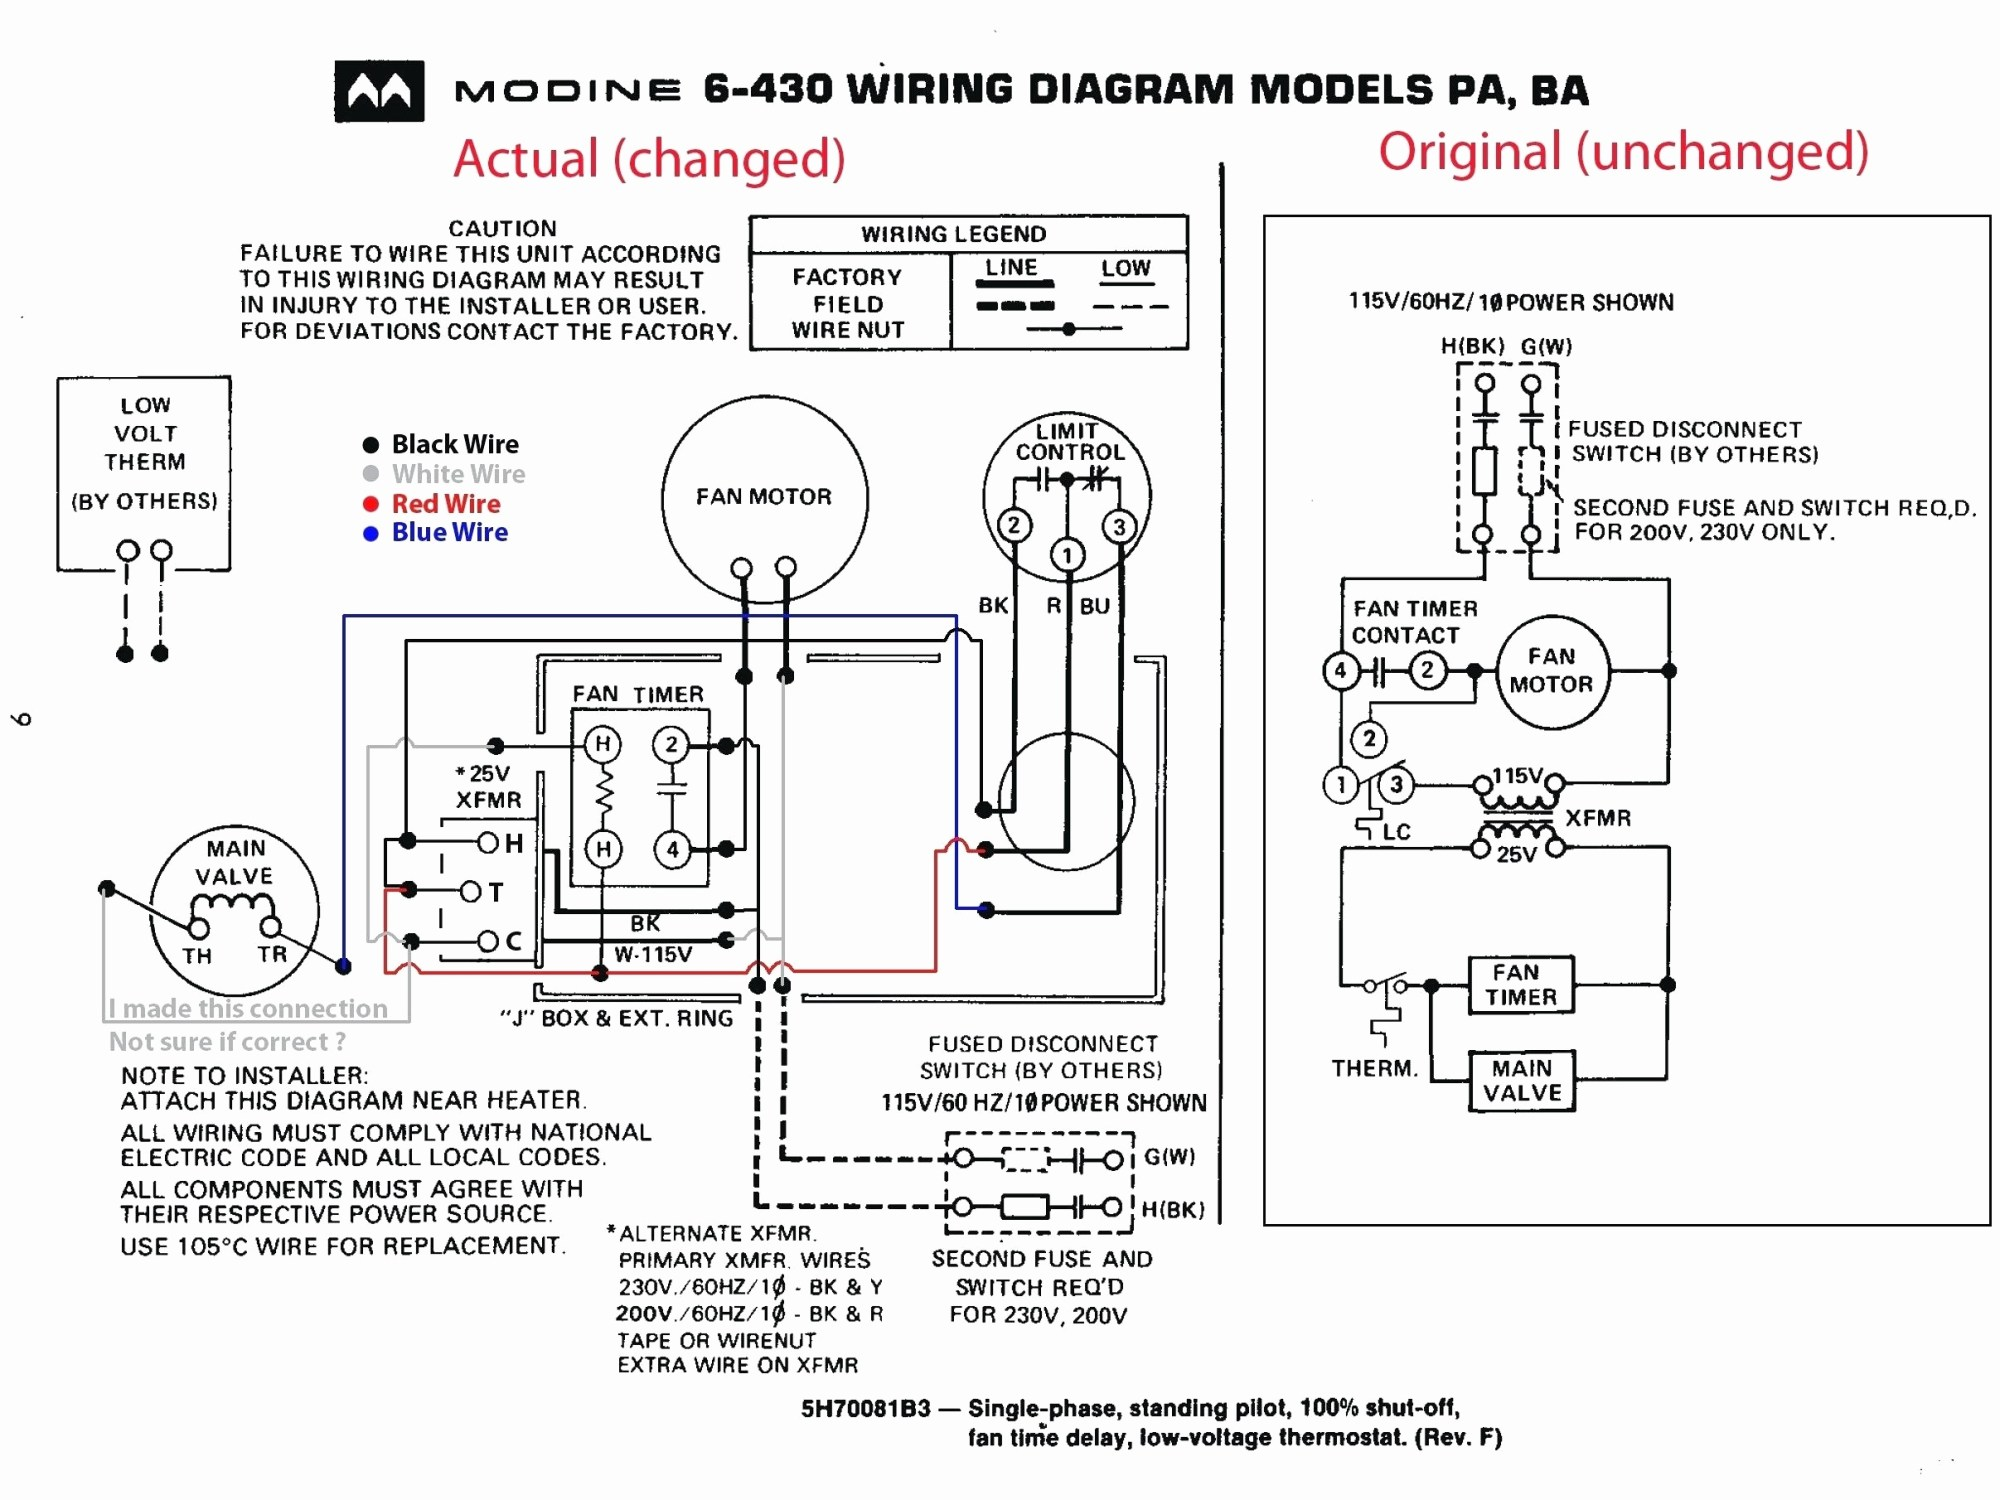 hight resolution of dd15 wiring diagram pid 168 advance wiring diagram dd15 wiring diagram pid 168